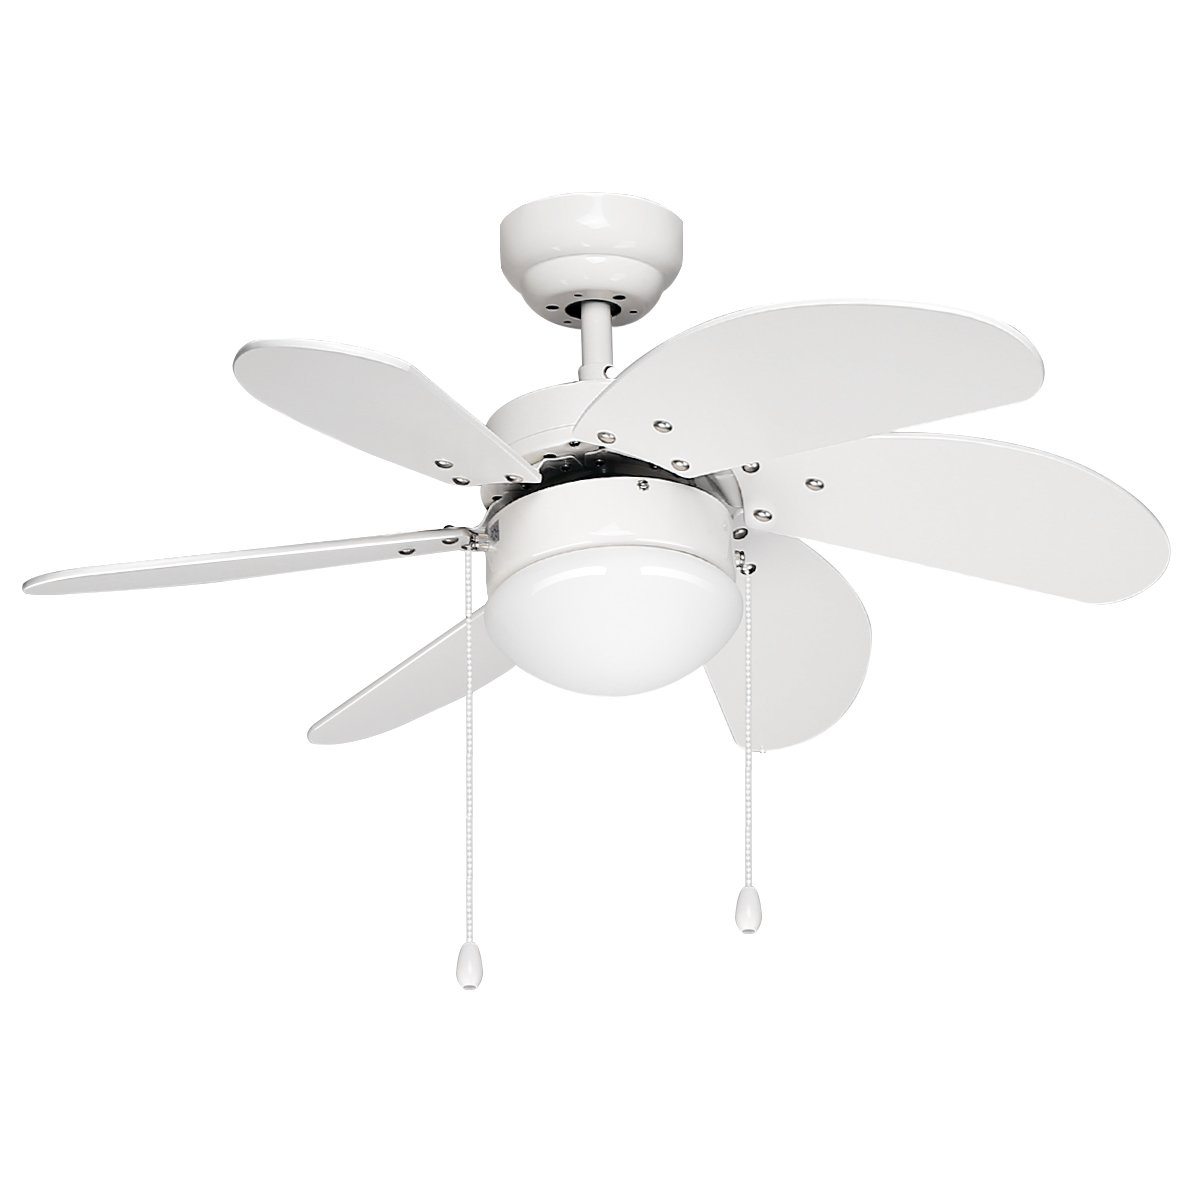 LE 30 inch Indoor Ceiling Fan 6-blades Reversible Classic Fan Light Kit For Winter Summer, UL Listed, Perfect for Home Hotel House Bedroom Dinning Hall Lobby